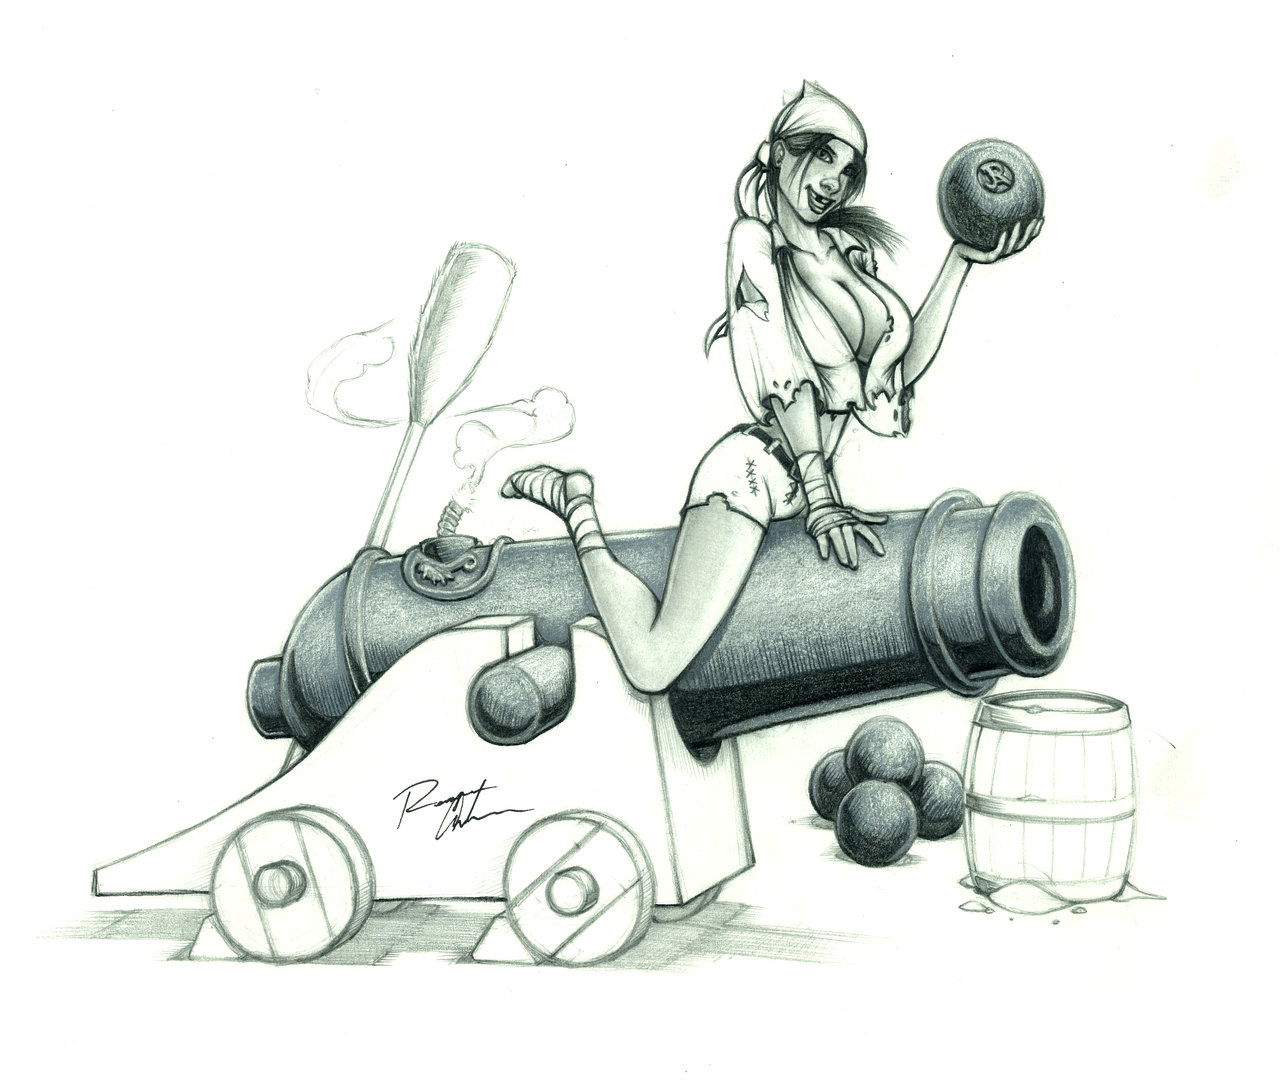 Drawn pirate cannon By by JREAGANA Pirate Cannons